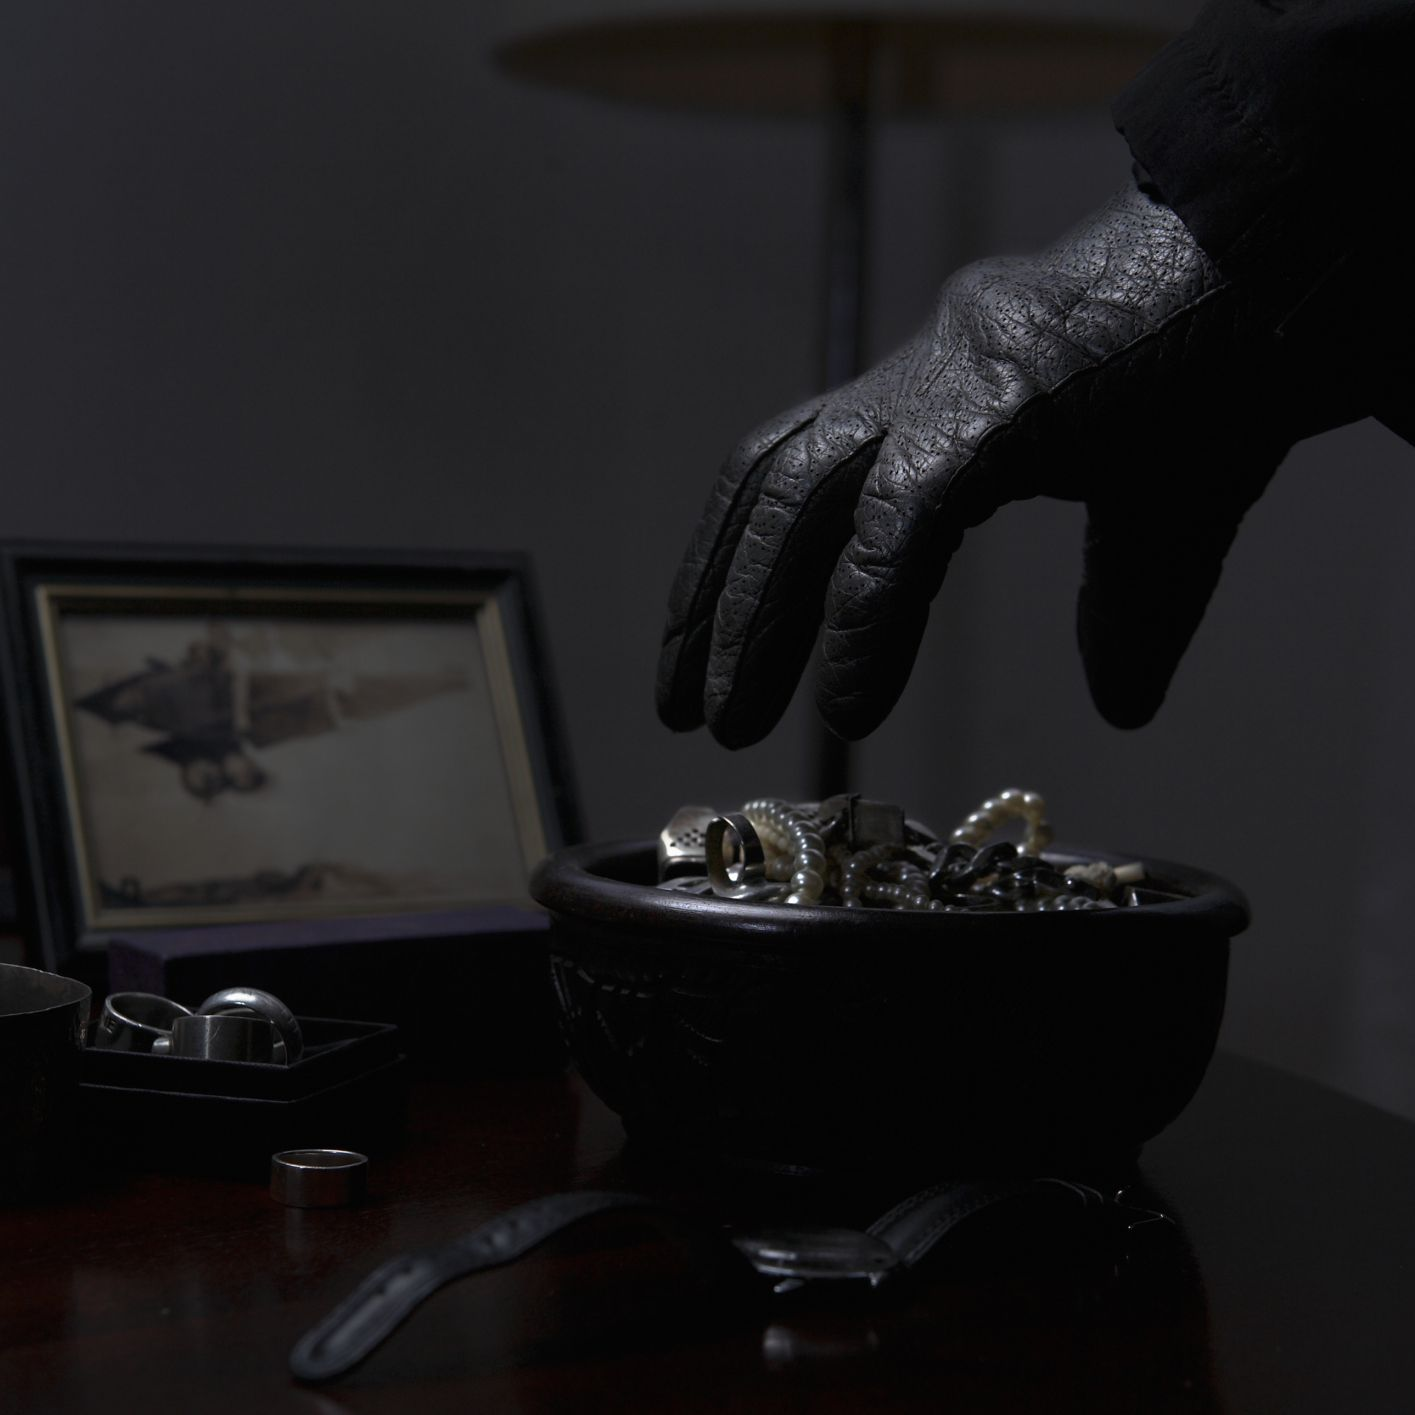 gloved hand reaching for jewelry